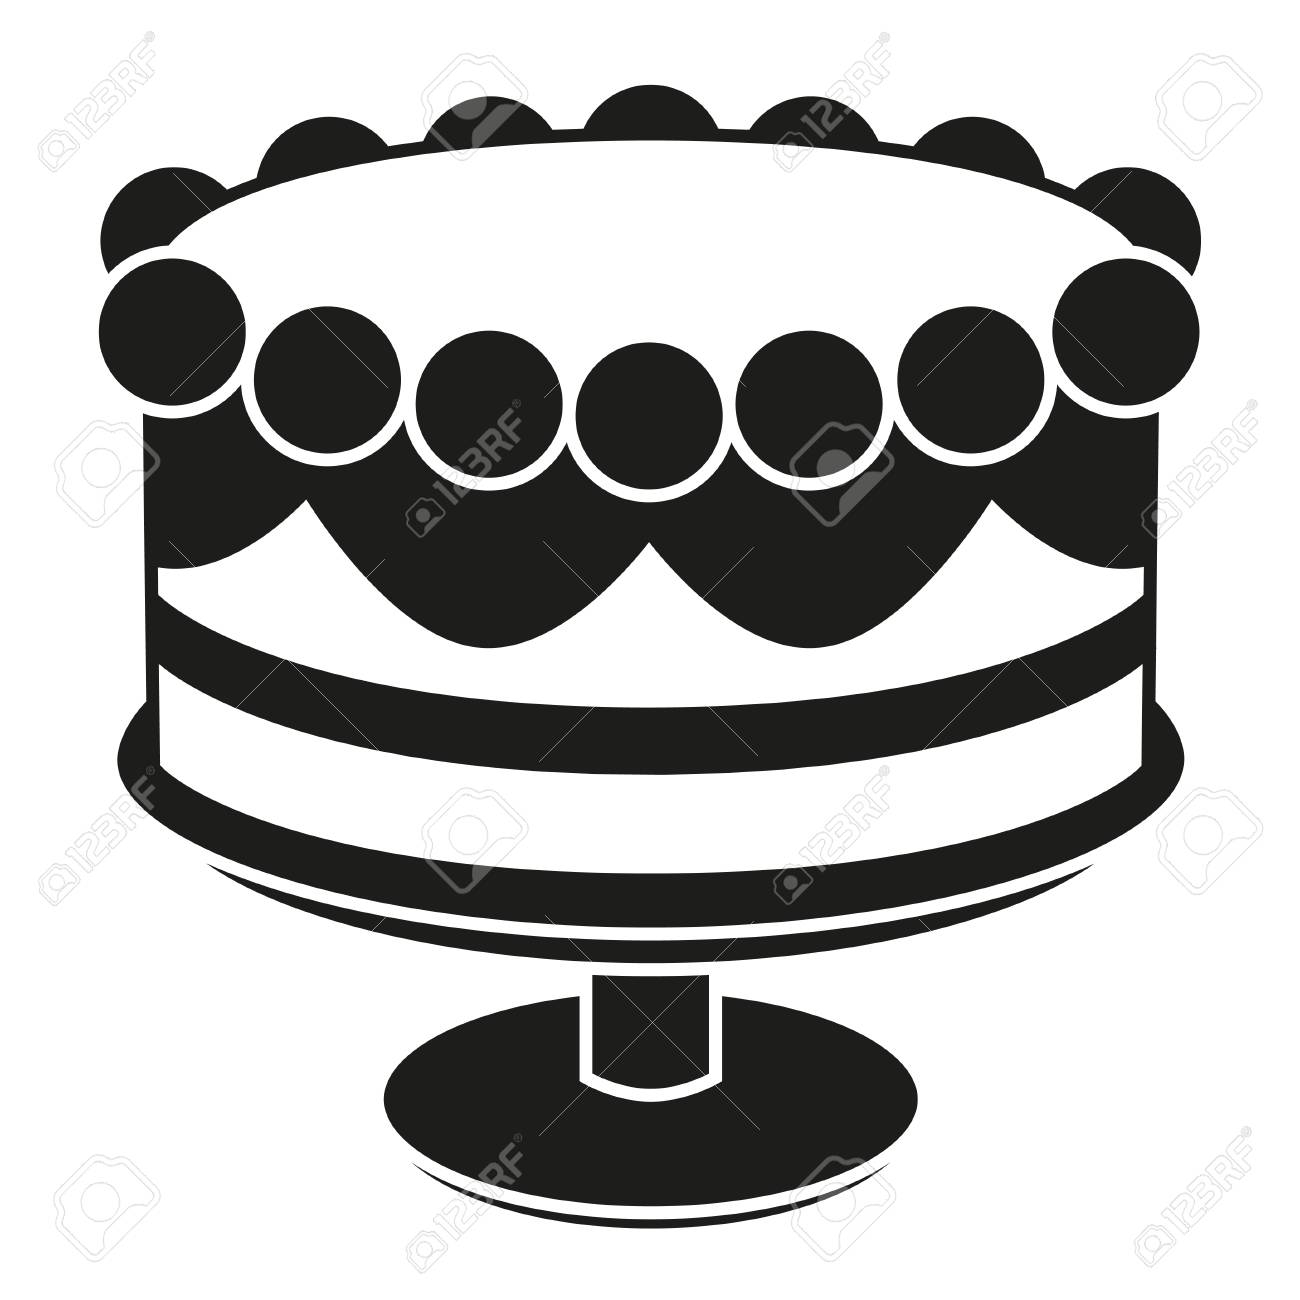 Black And White Birthday Cake Black And White Birthday Cake On Stand Silhouette Sweet Food